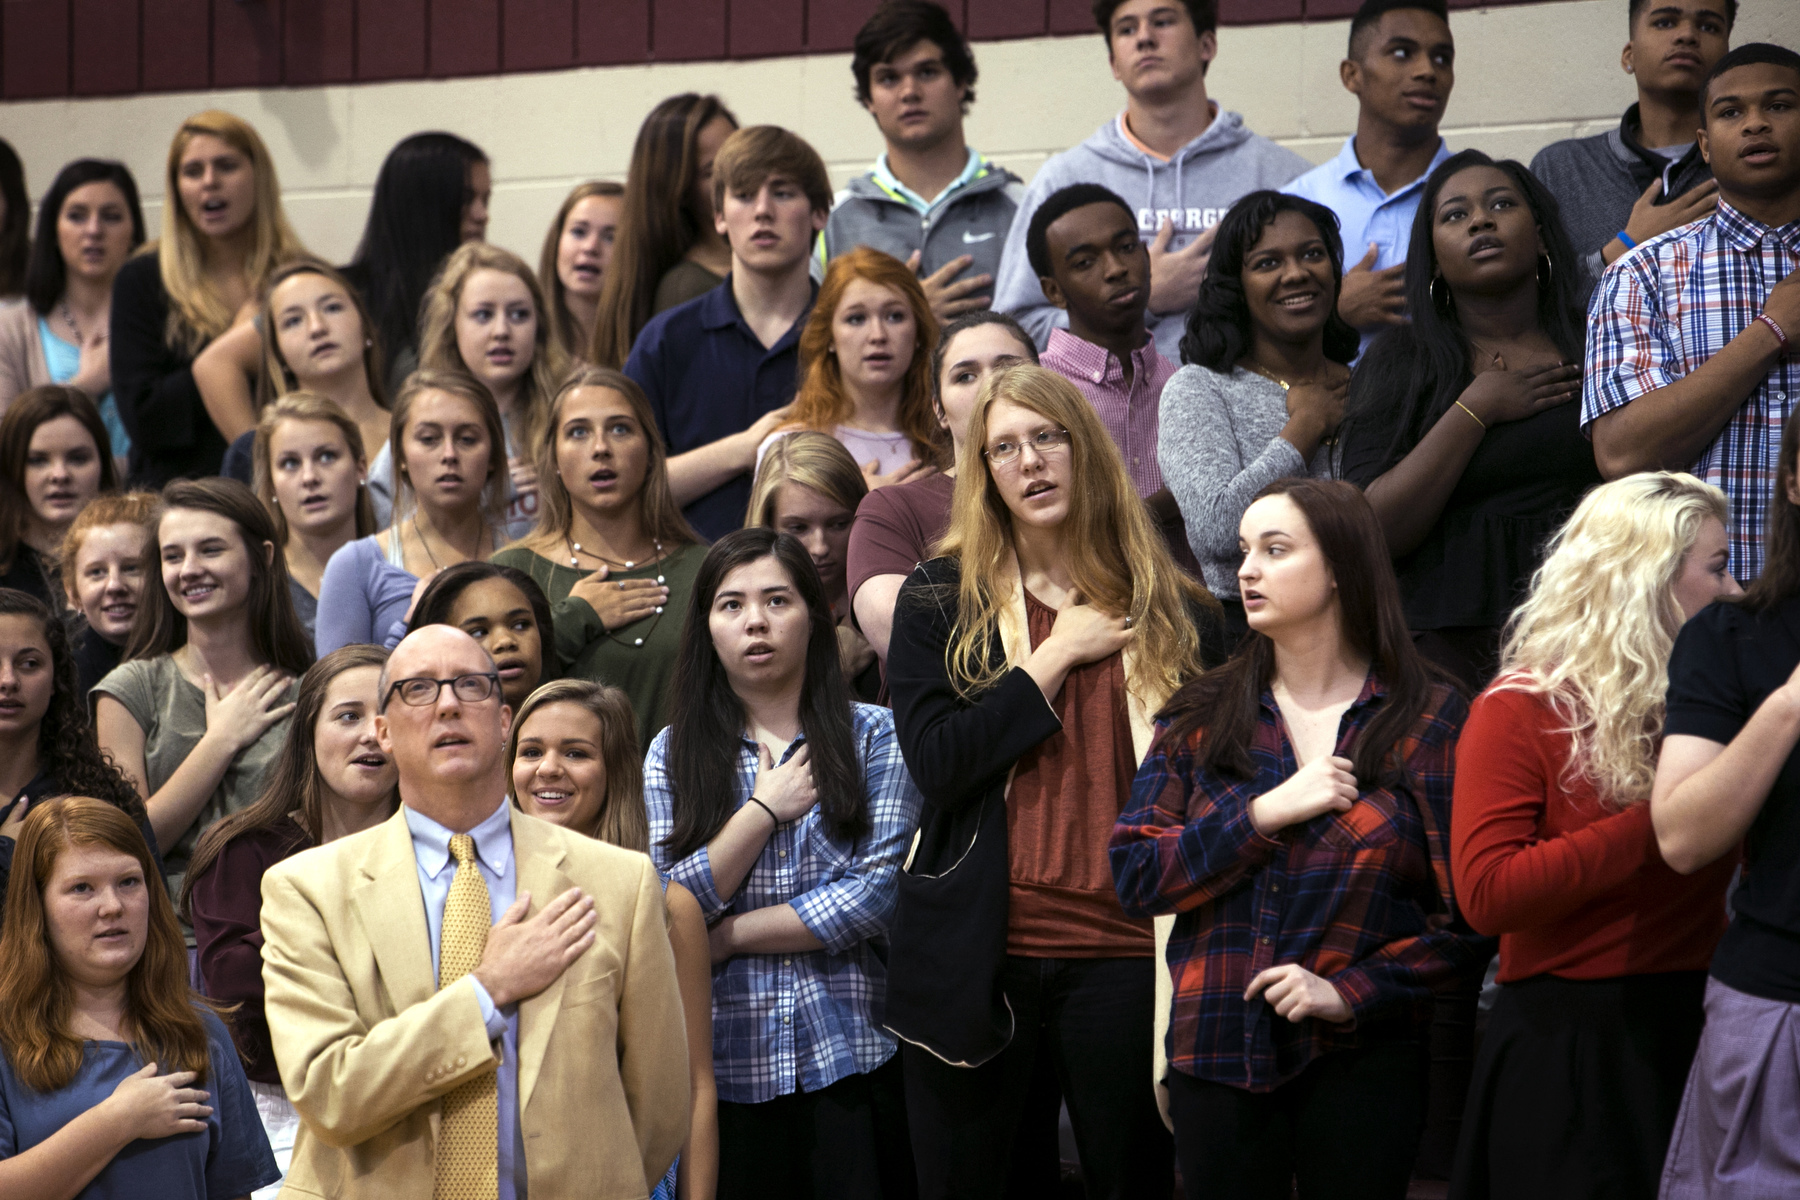 May 9, 2016 - St. George's students, along with head of school J. Ross Peters (bottom, left), say the Pledge of Allegiance before the start of an upper-school chapel service in the school's gym. Later during the service senior Will Courtney stepped to the microphone and took the students and administration to task for what he described as a {quote}noble{quote} experiment that was failing. With only five of the original 19 students who started the first class at the Memphis campus graduating many had been weeded out or left behind, and he noted the visible racial divides in school settings such as the lunchroom and chapel services. {quote}We look for comfort in our groups. I think it's a mistake to place too much value on which groups sit together. People look for shared backgrounds, shared experiences.{quote} Peters later said. (Mike Brown/The Commercial Appeal)